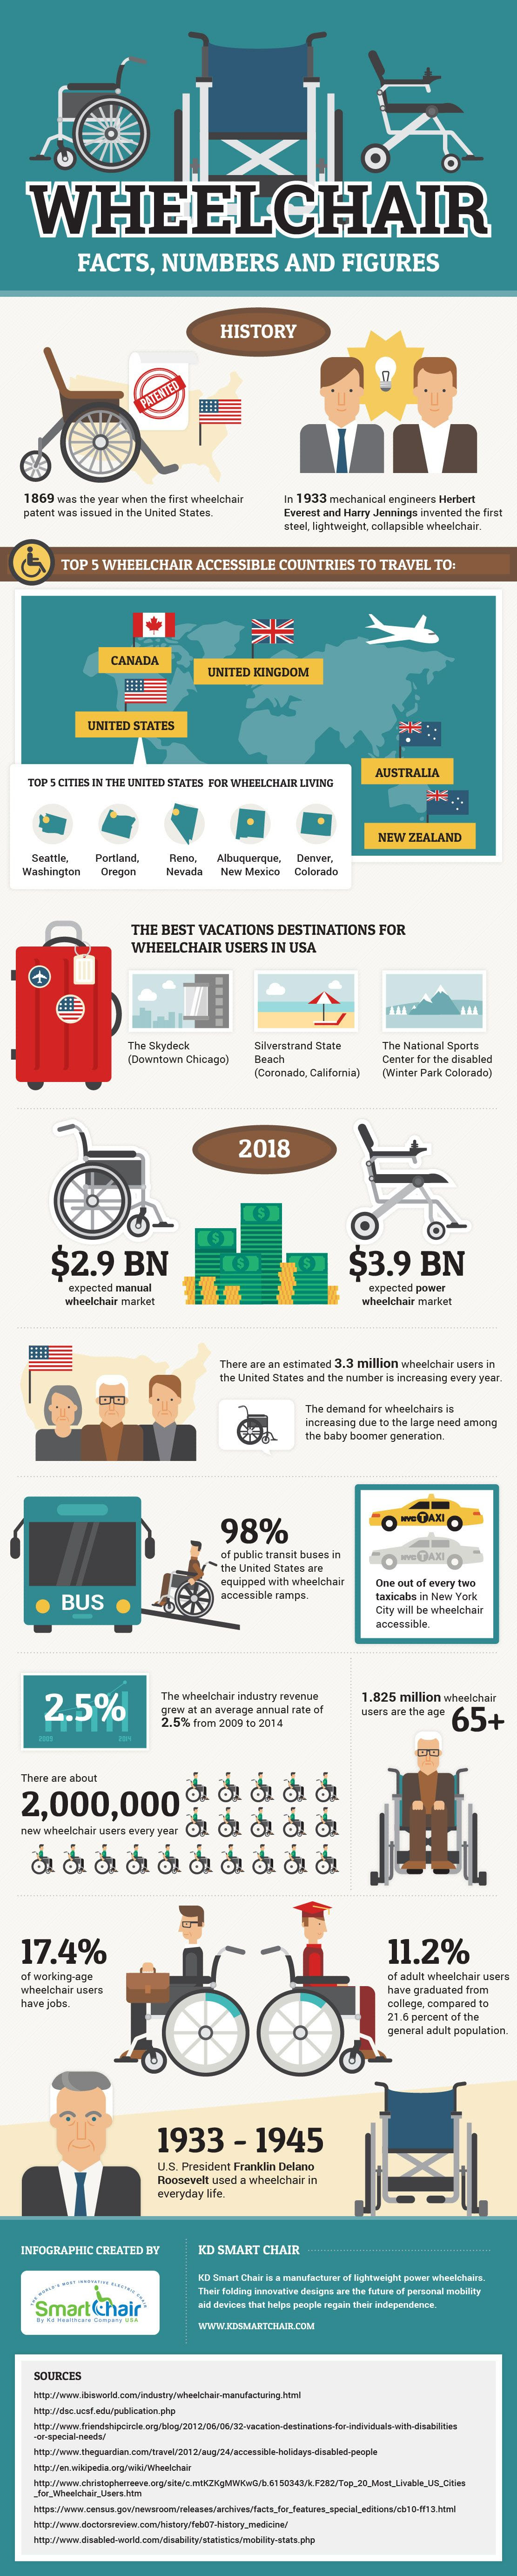 Wheelchair Facts, Numbers and Figures